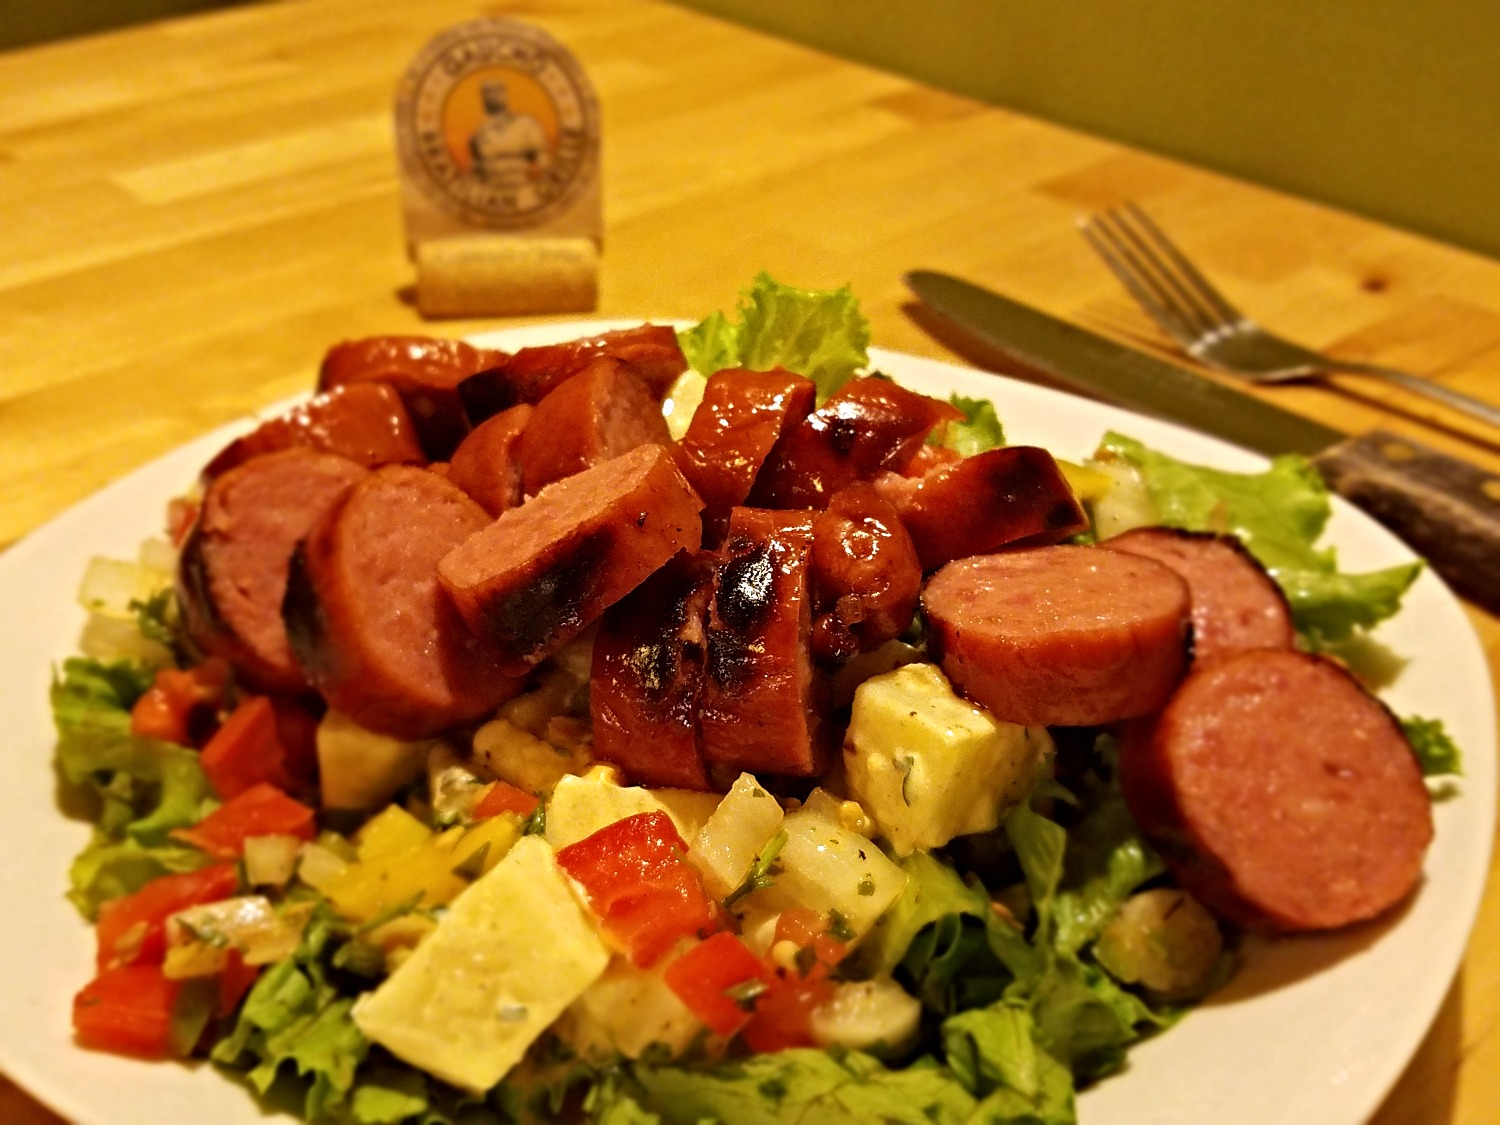 Salad Meal featuring smoked Kielbasa